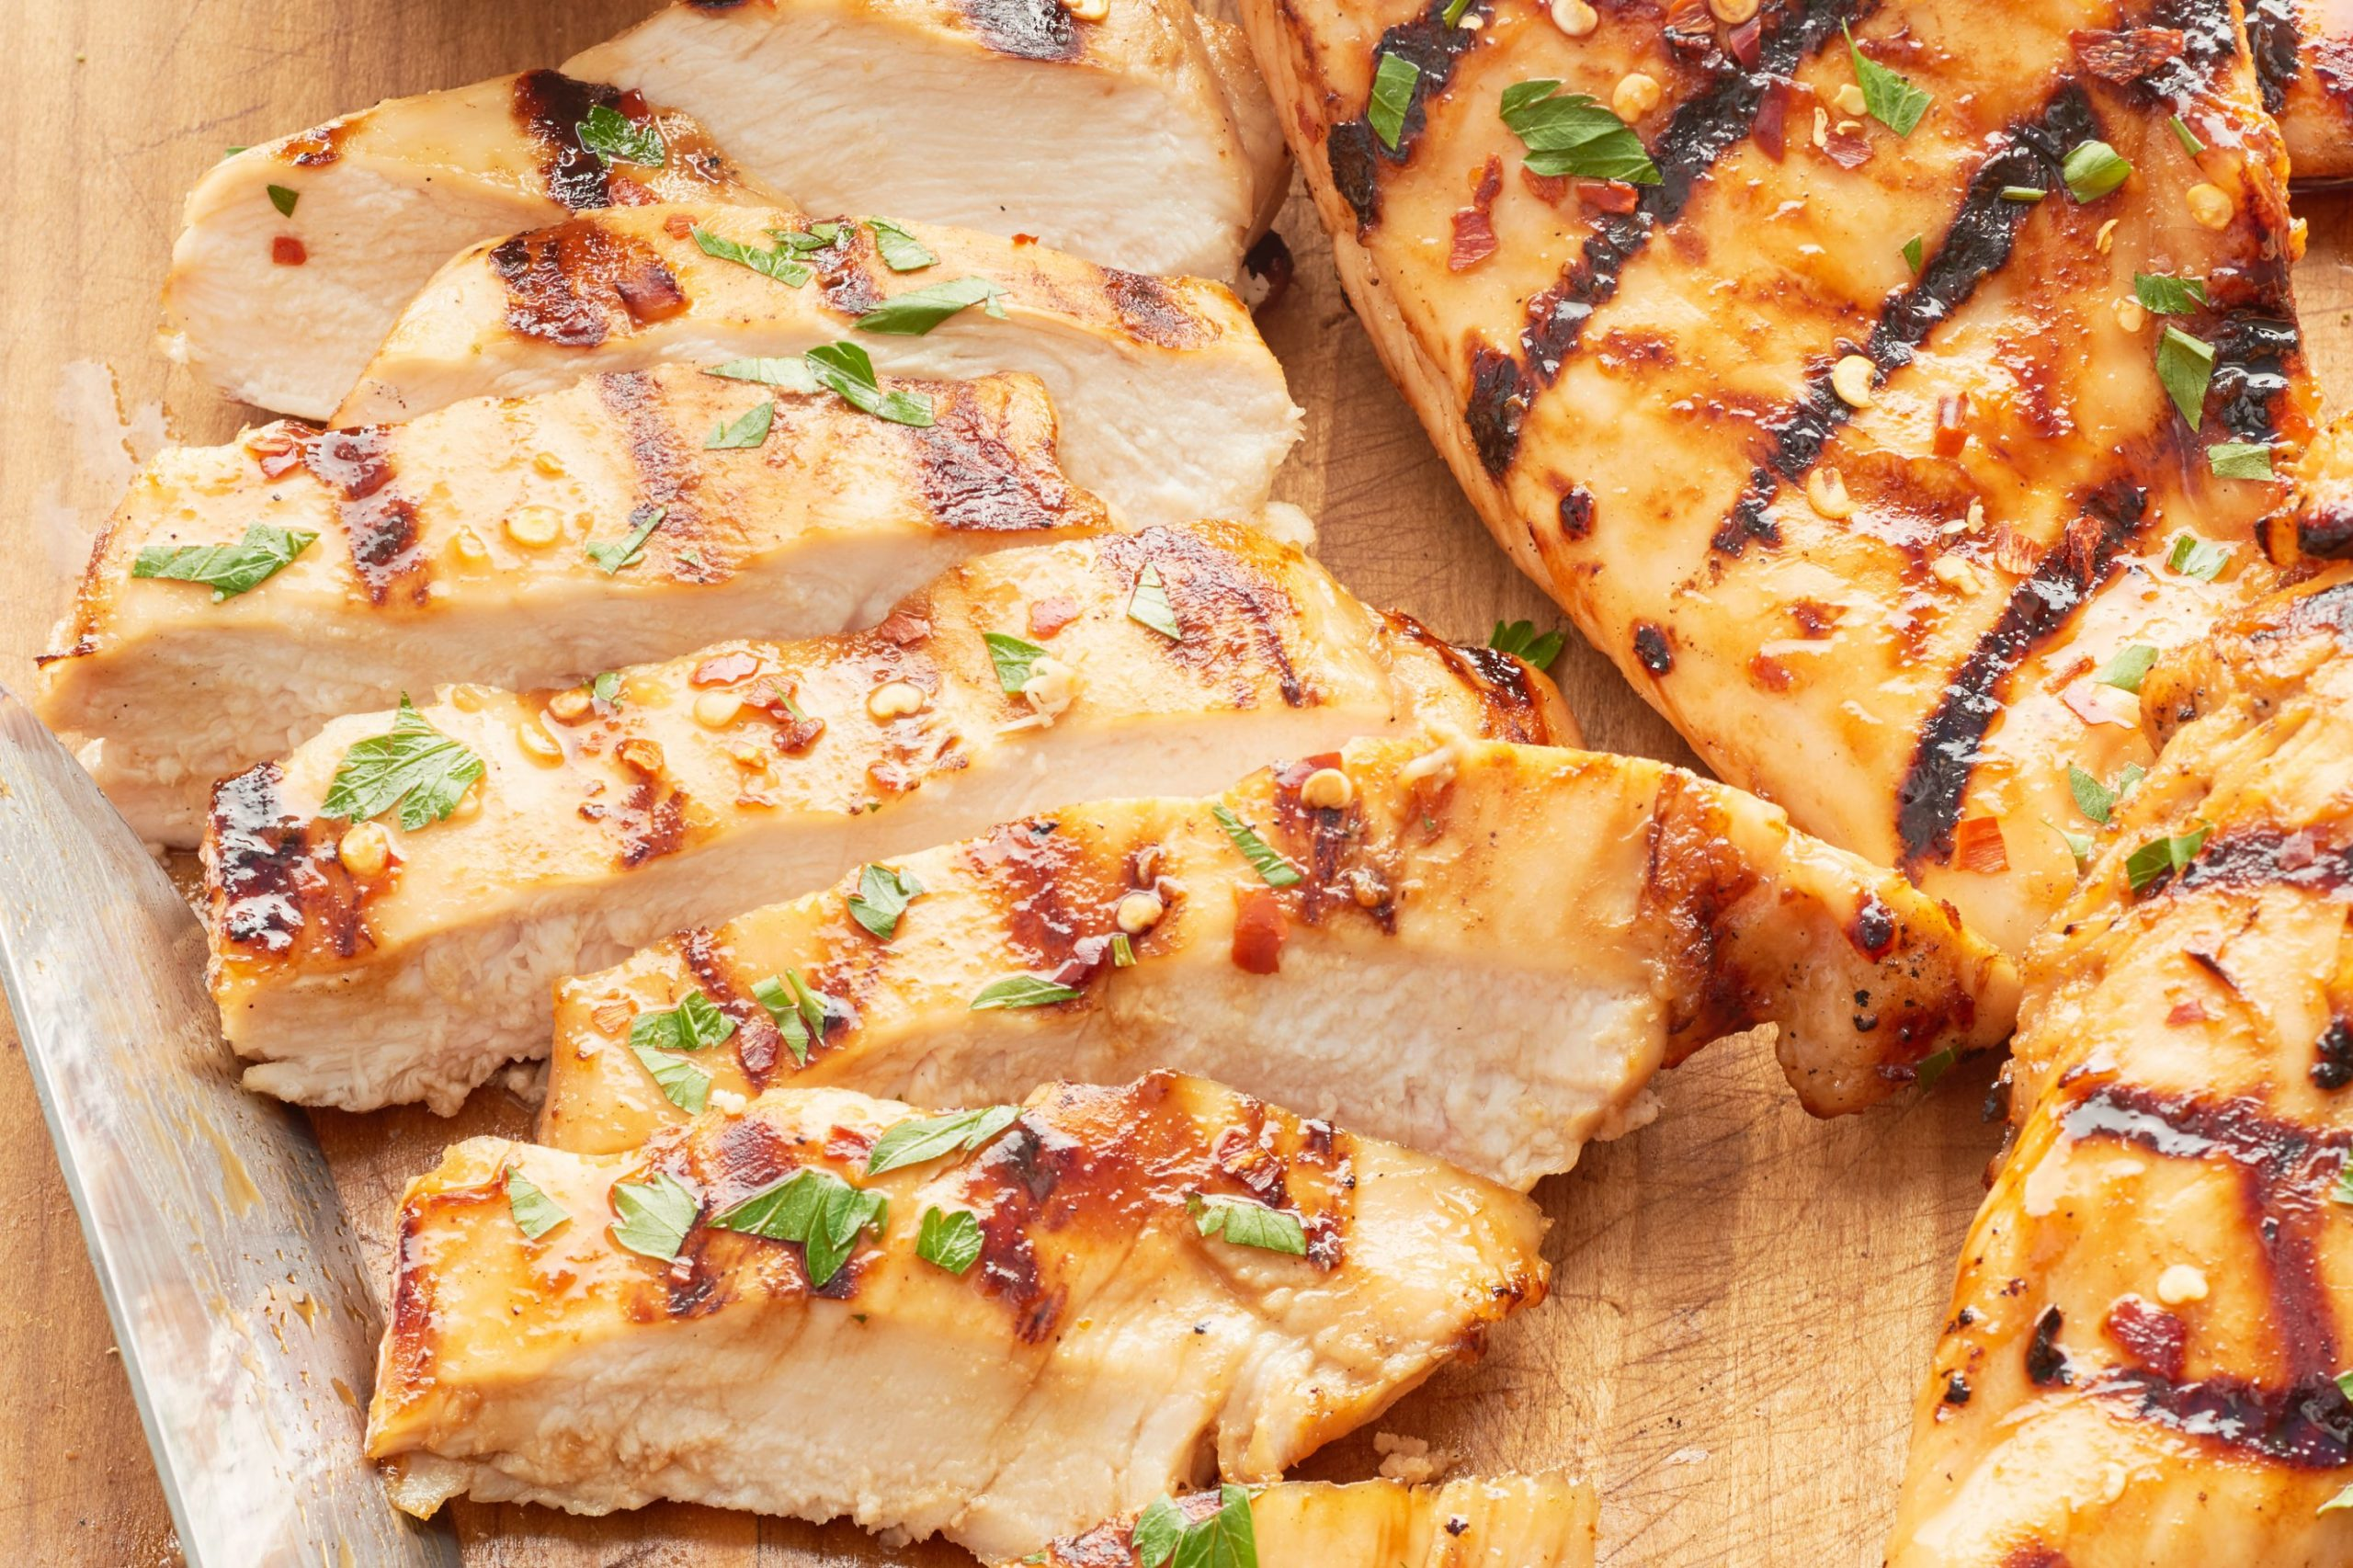 How To Make Juicy, Flavorful Grilled Chicken Breast